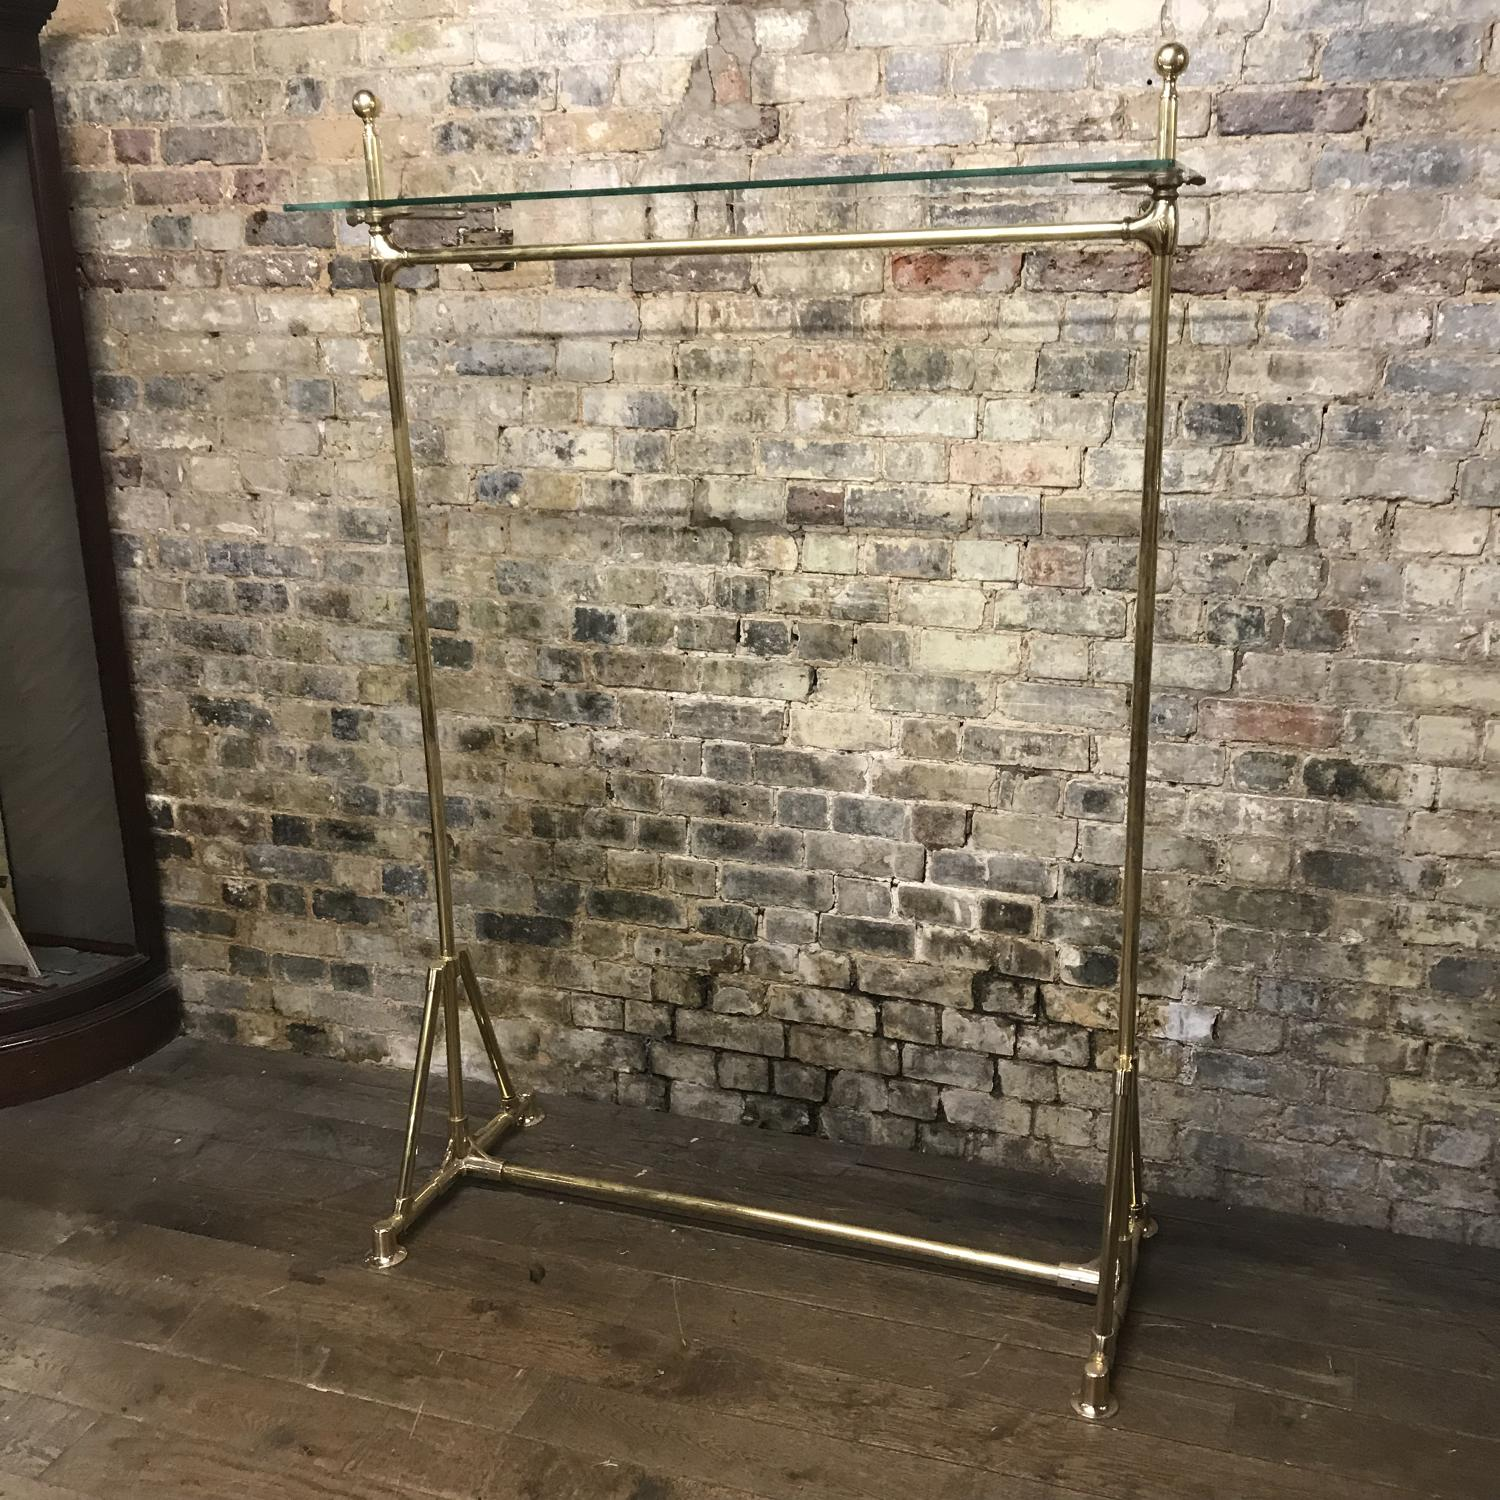 Antique style Brass Hanging Rail with Glass Shelf